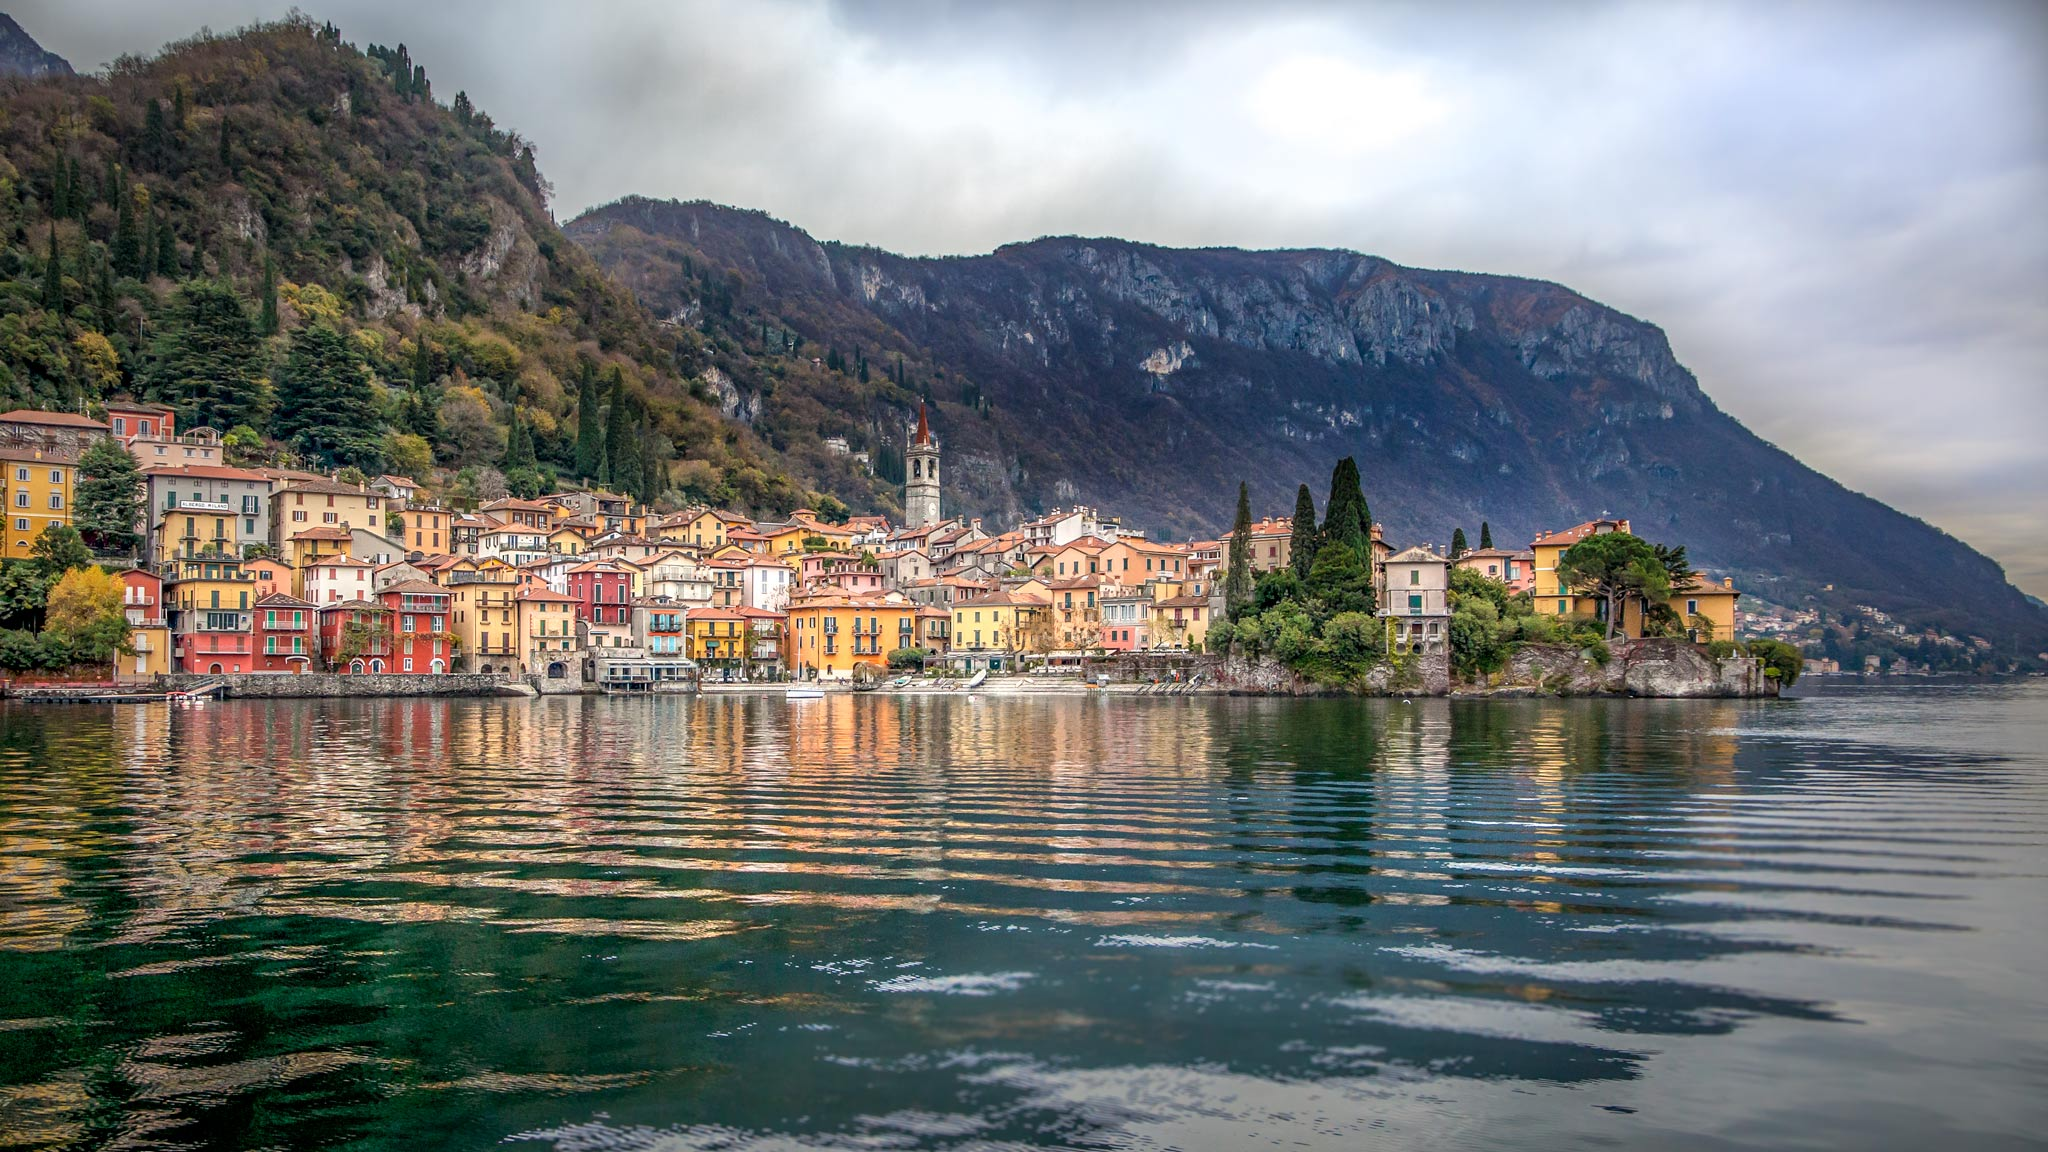 Lake Como in Lombardy with the colourful village reflecting in the ocean